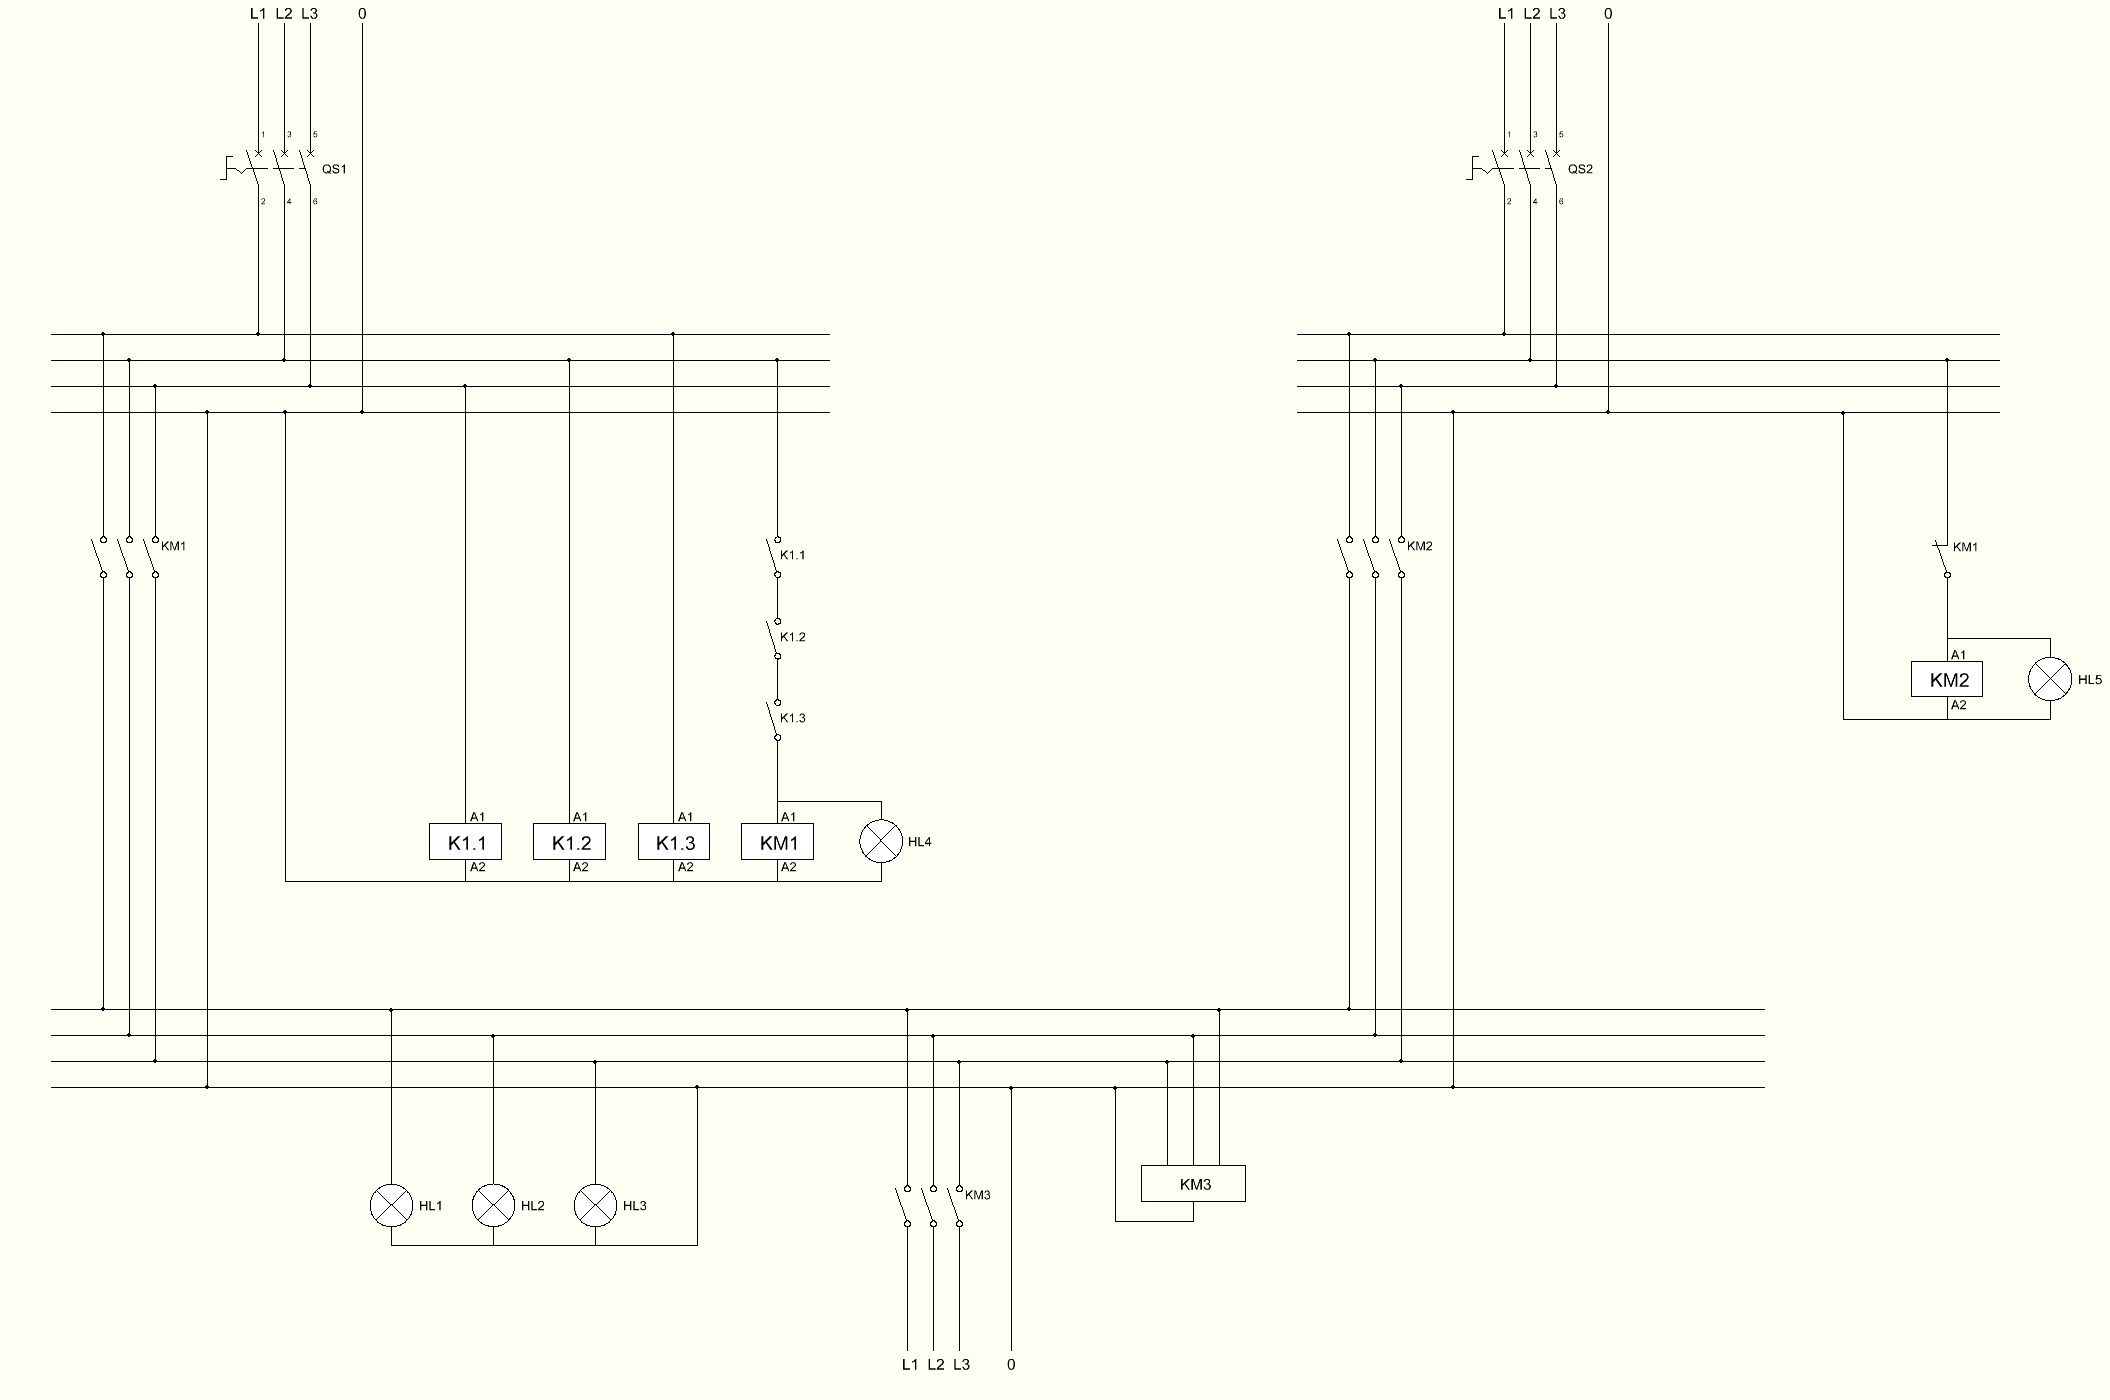 Filewiring diagram of automatic transfer switch for dummiesg filewiring diagram of automatic transfer switch for dummiesg swarovskicordoba